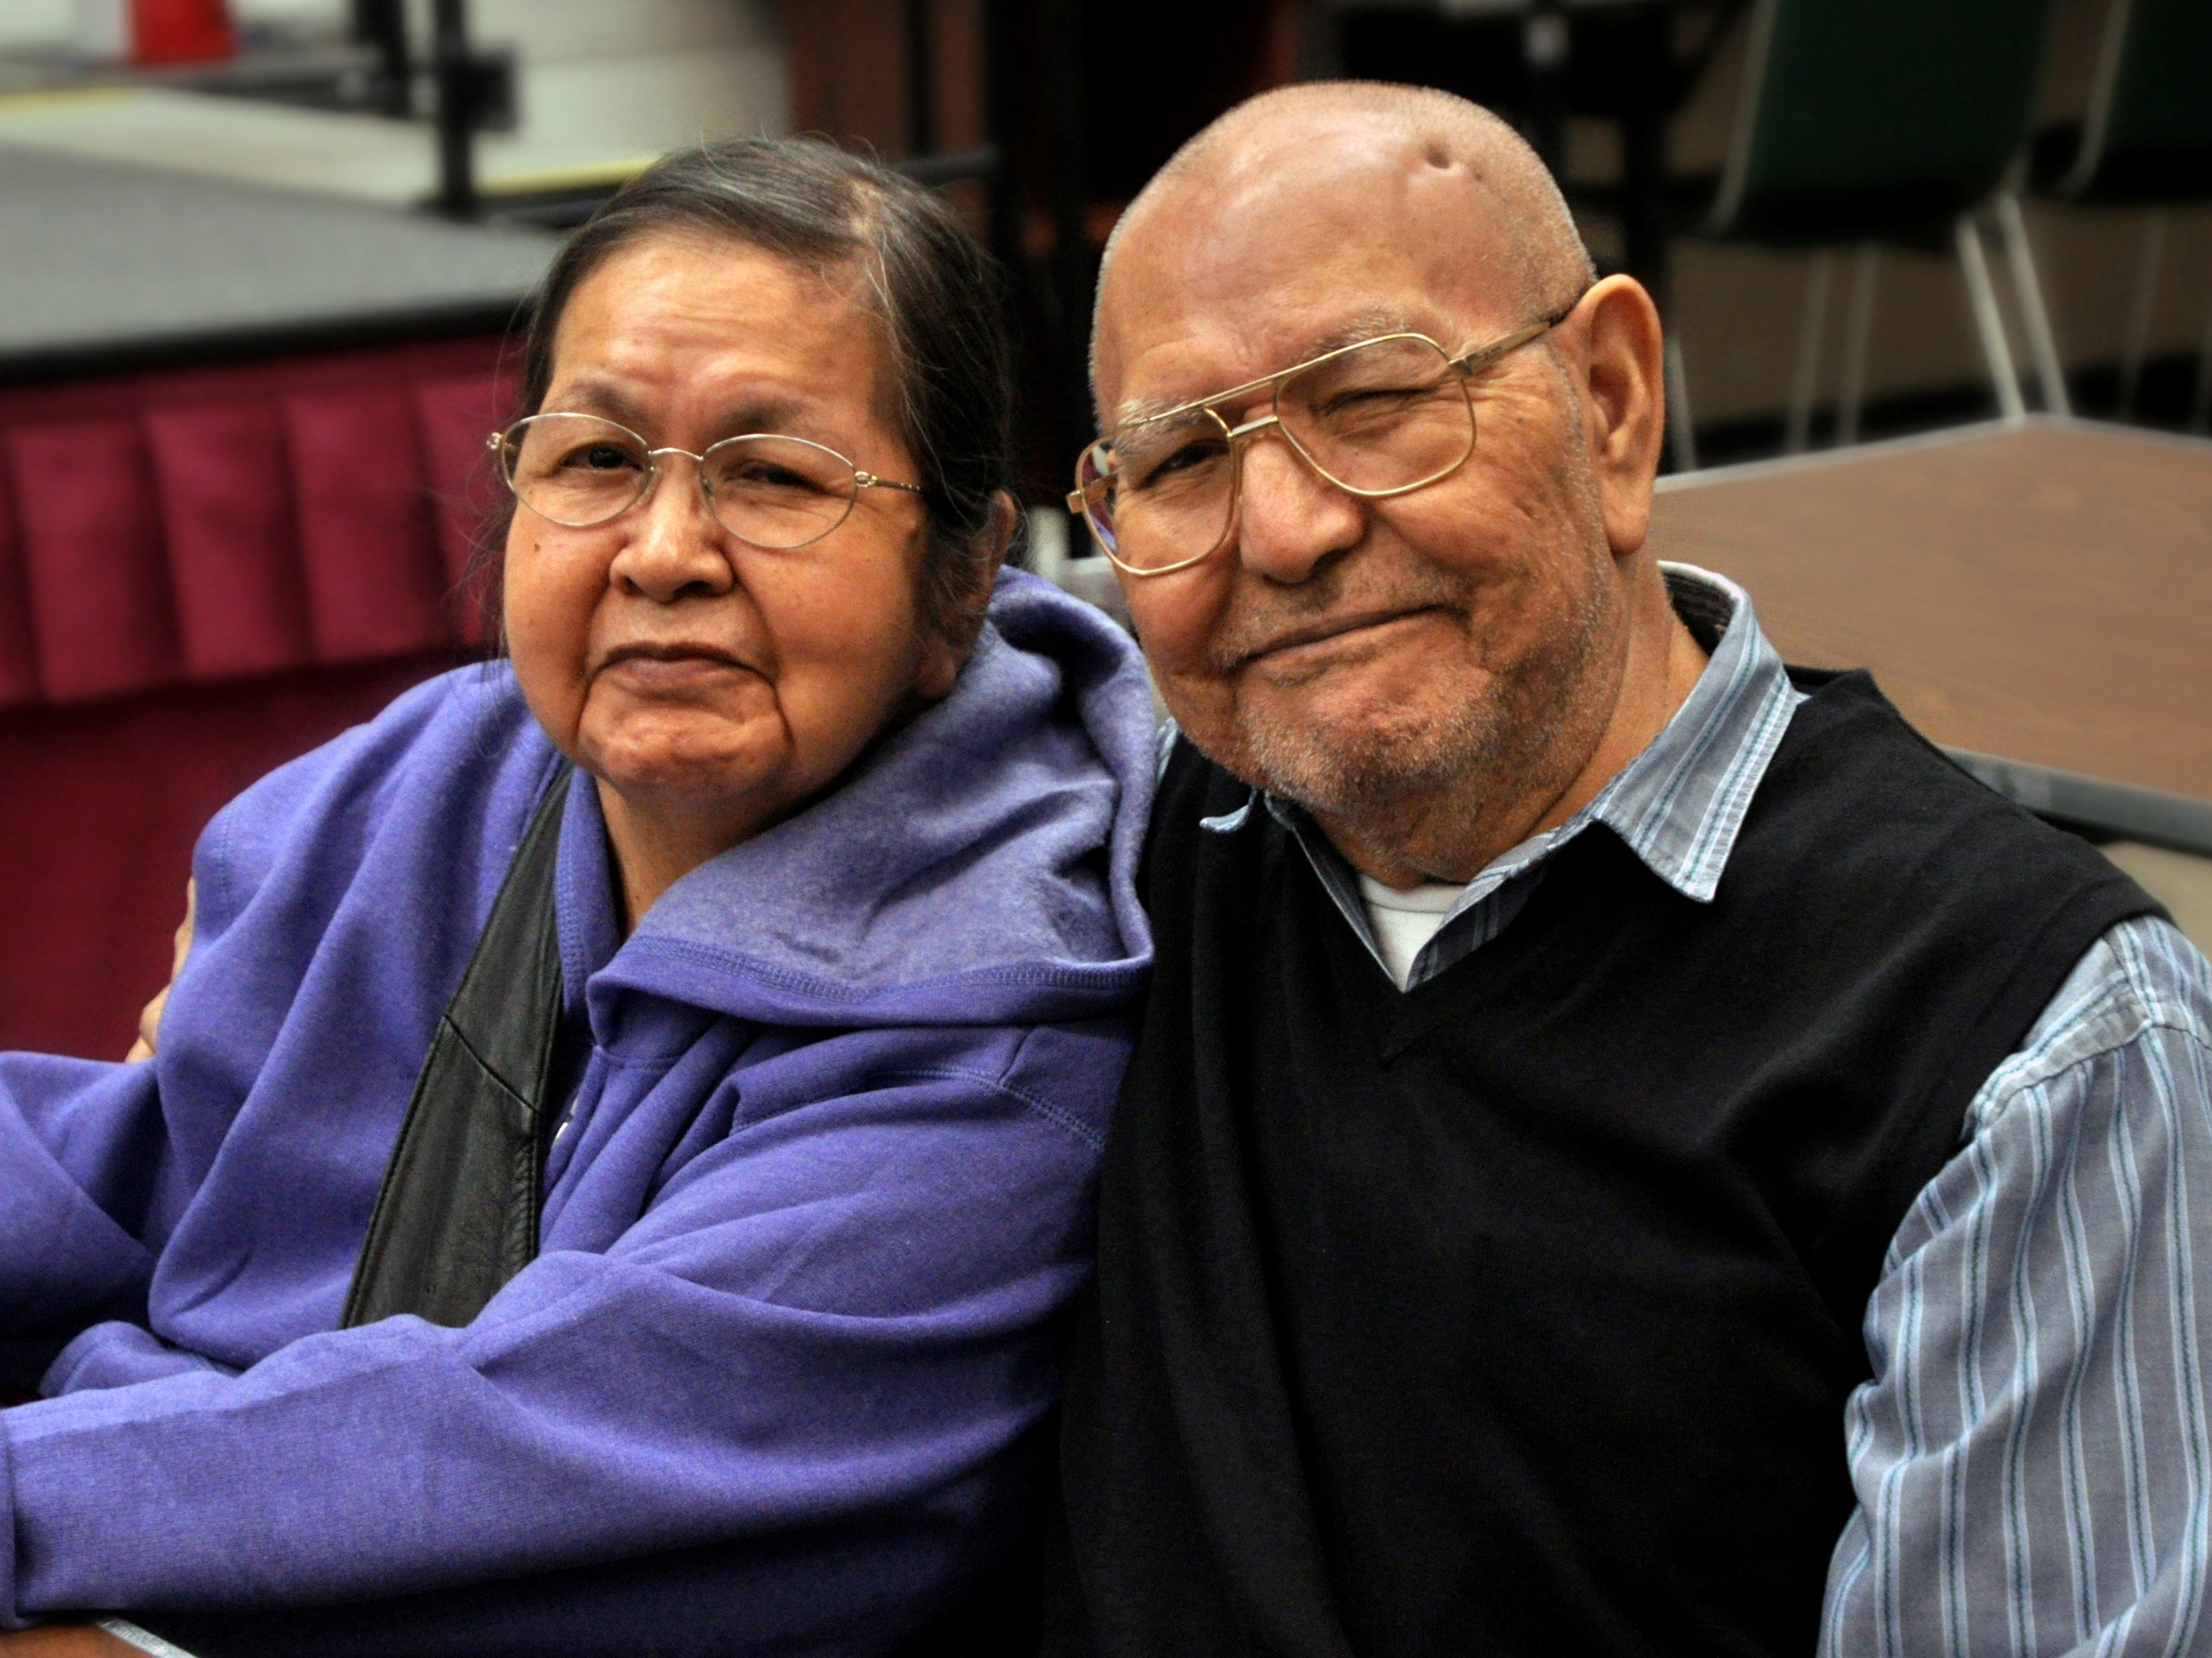 Lillian & Harvey Marvin at a Tlingit & Haida Central Council Native Forum luncheon. (Photo courtesy of Jodi Garrison)